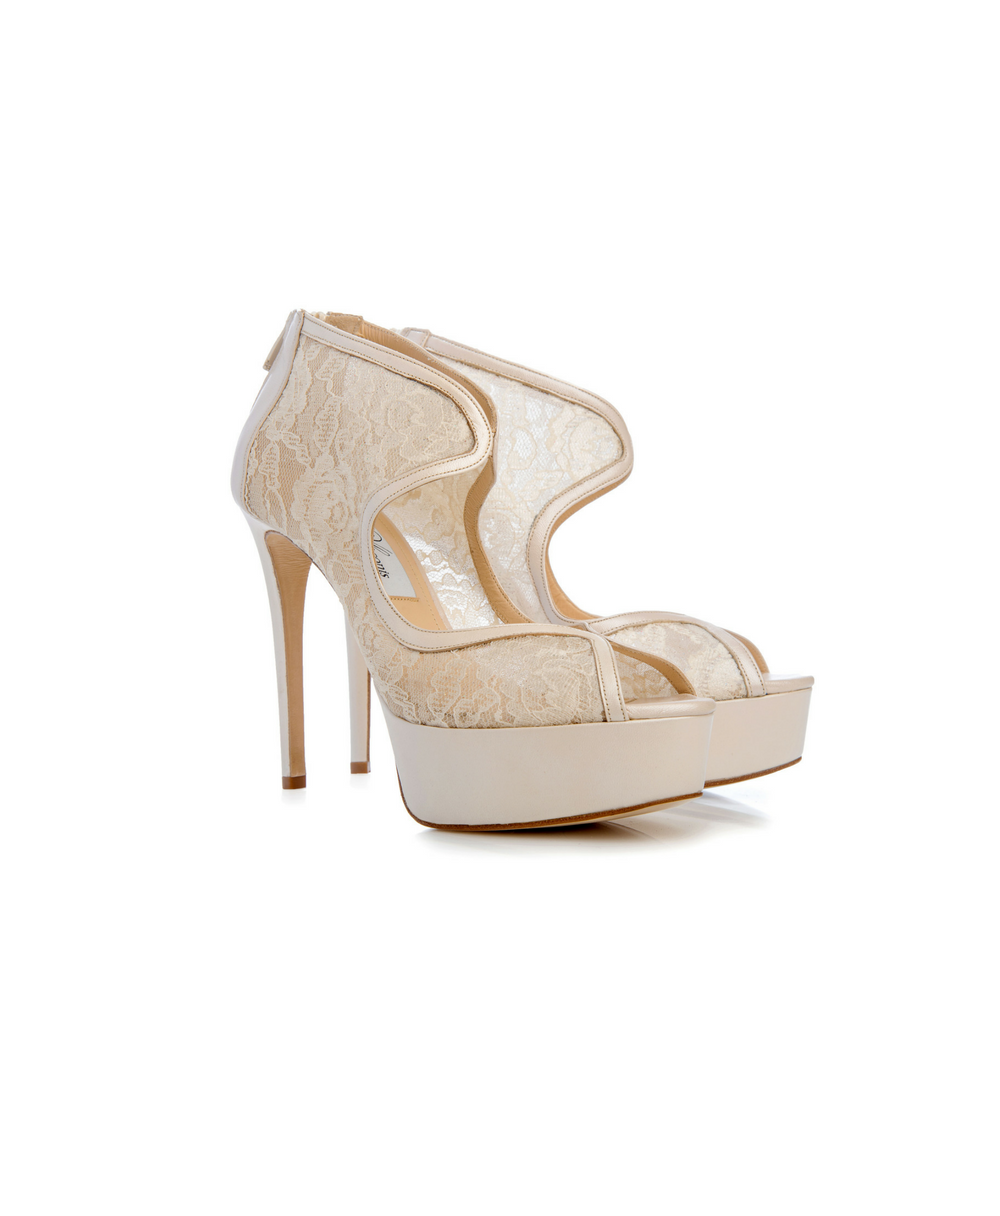 Bridal Ankle Zip Booties With Florale Tulle And Pearl Ivory Leather Mod.9544